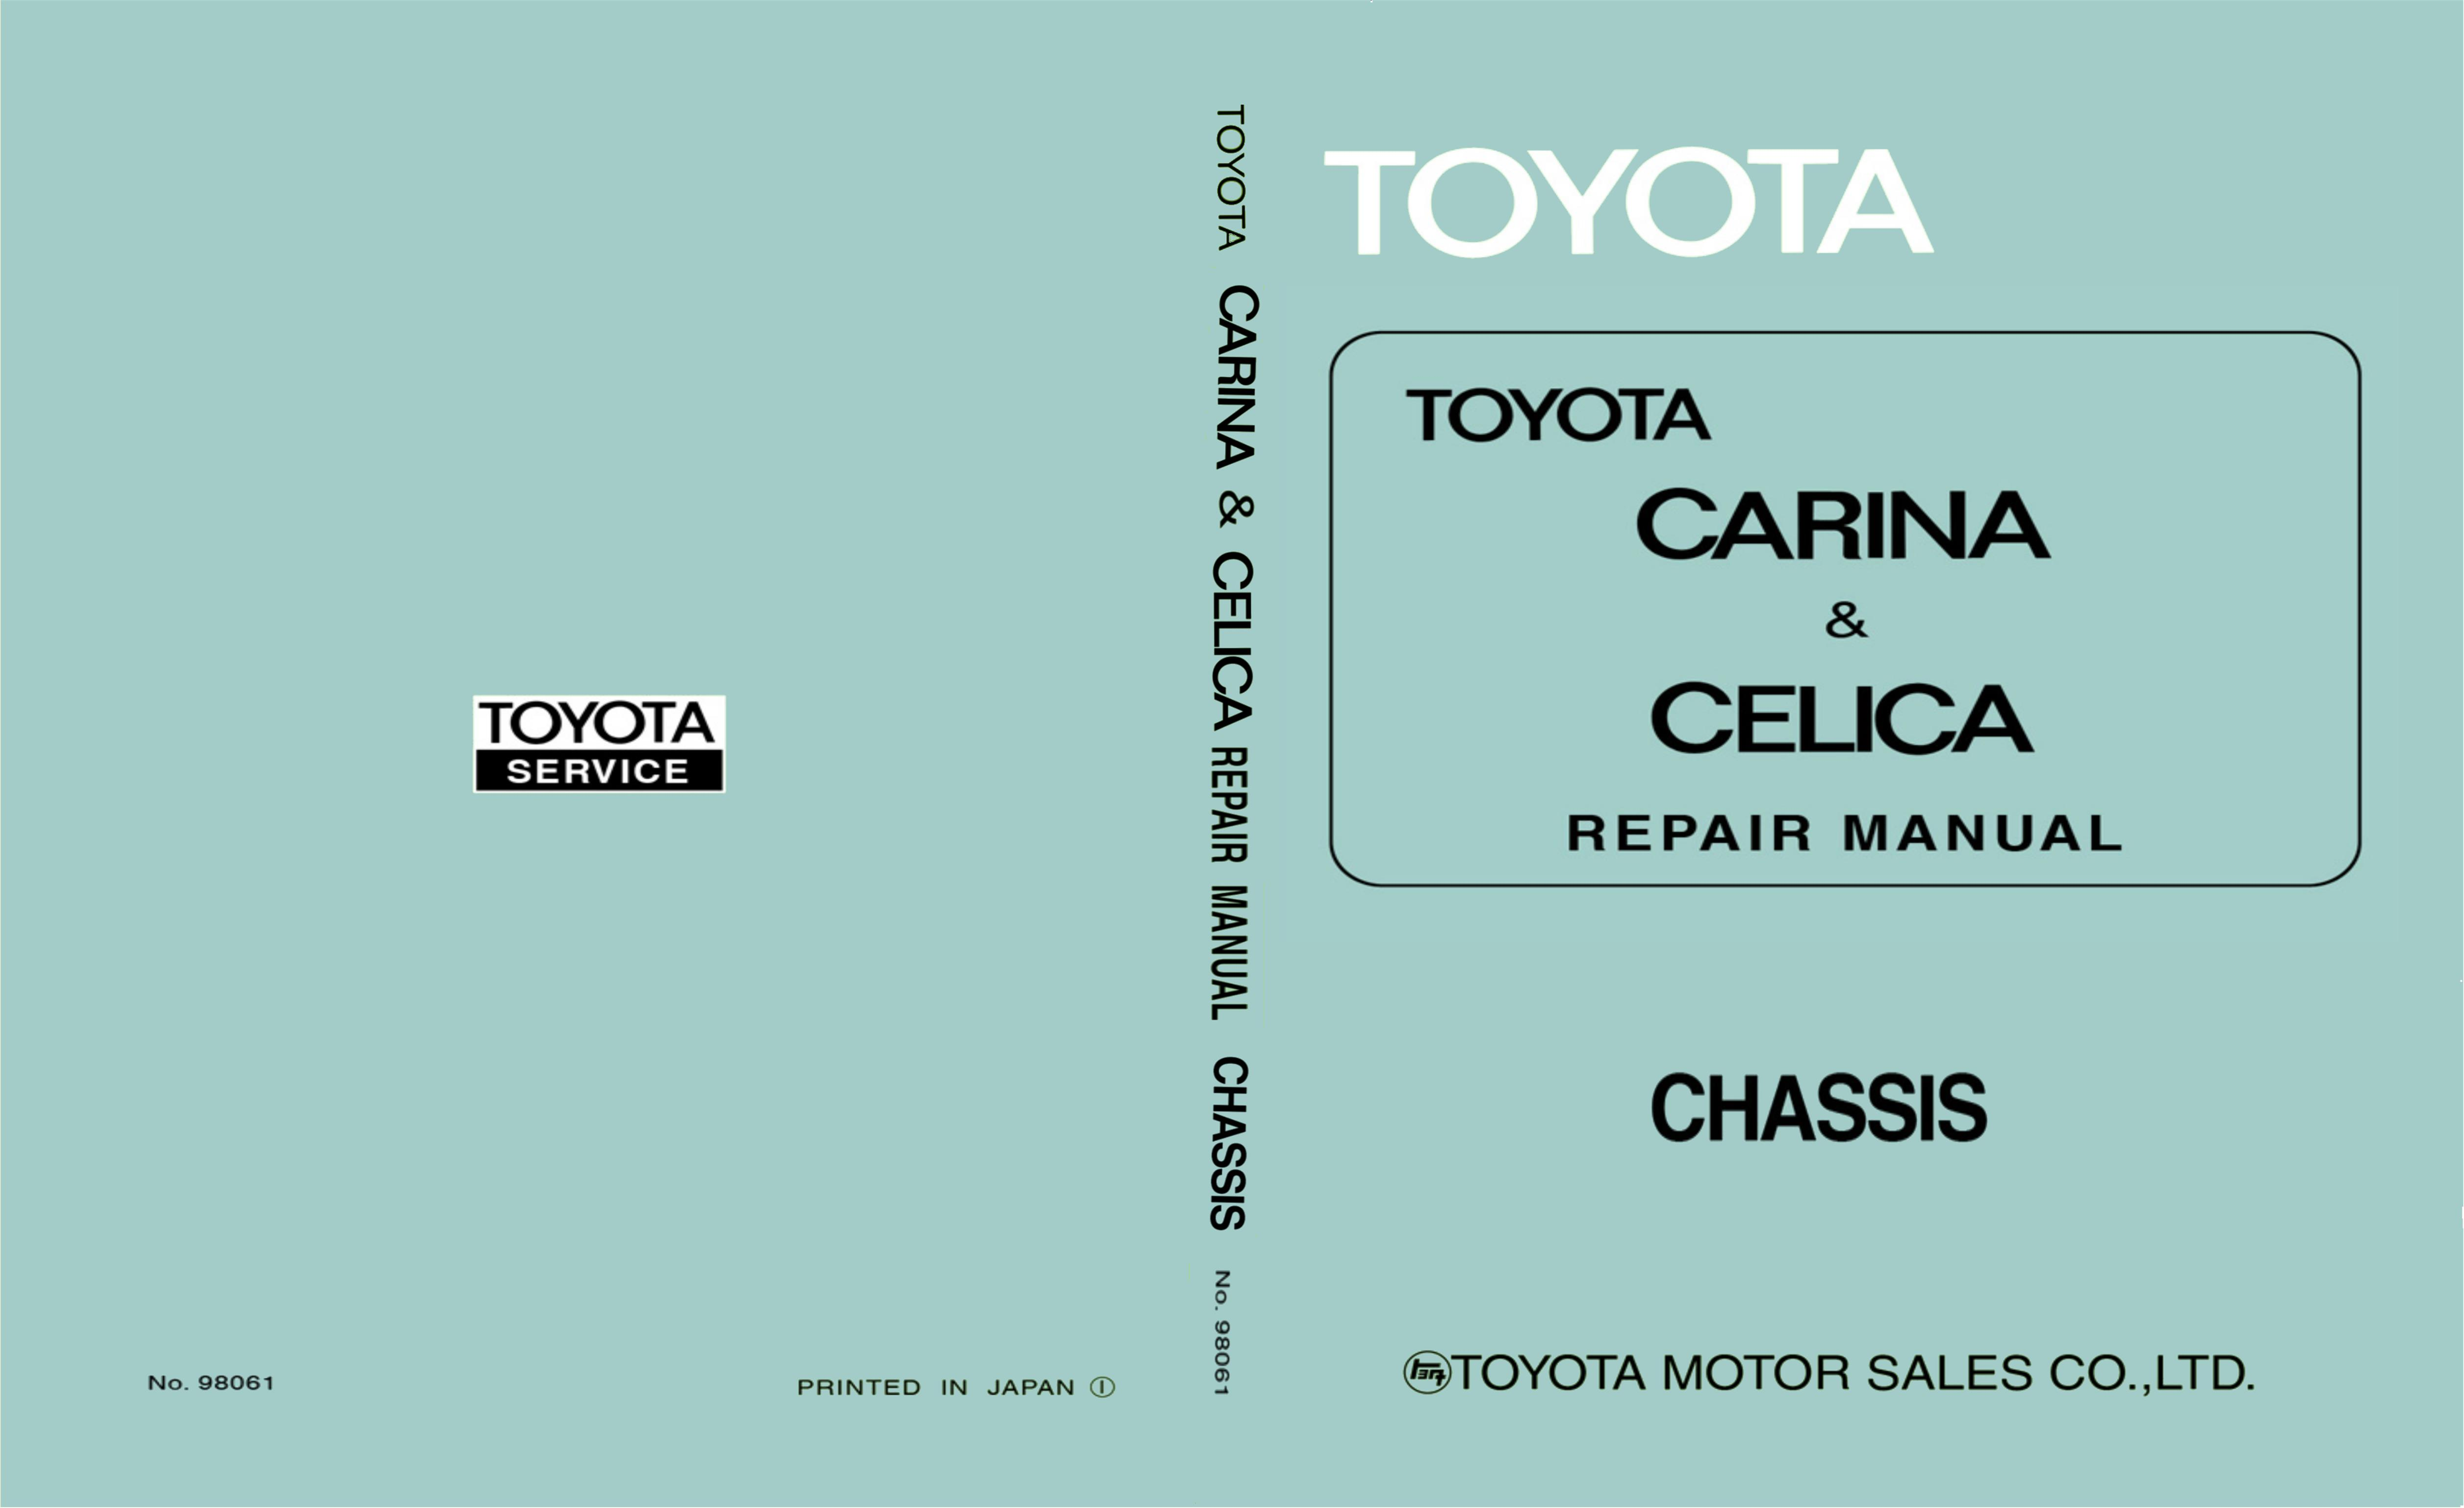 Toyota Celica 1975 Manual Sony Ericsson J200 Mobile Phone Layout Troubleshooting Diagrams Lt Array 1971 Carina Chassis By Clint Weis 16 00 Rh Thebookpatch Com